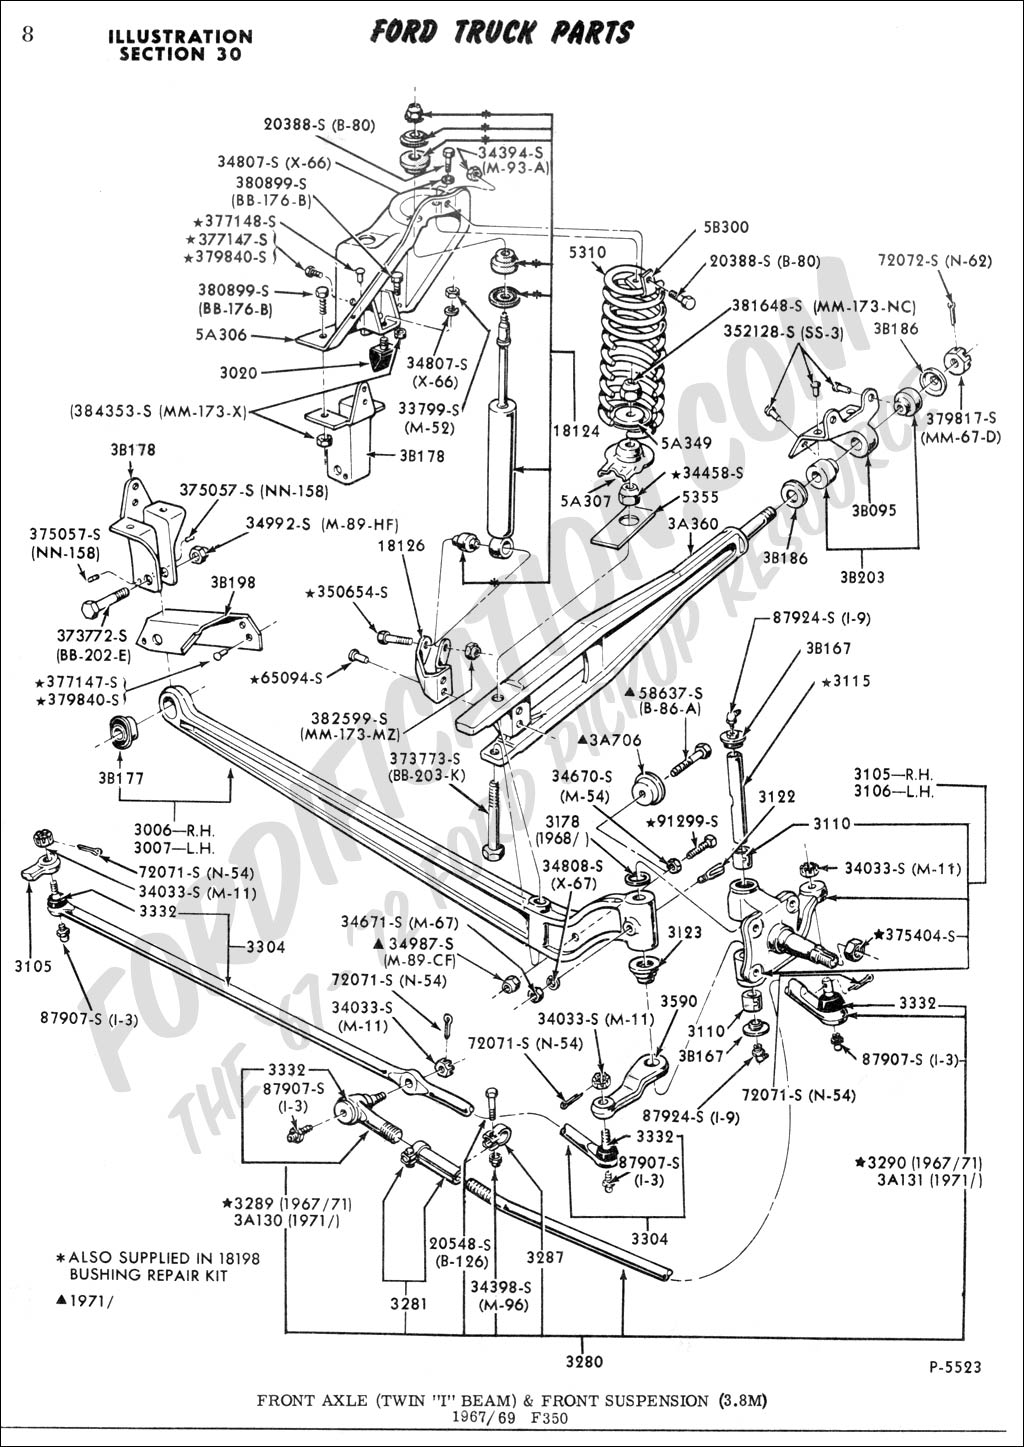 1997 F350 Front End Diagram Great Installation Of Wiring 2009 Ford F 350 F250 Suspension Diagrams Rh 20 Shareplm De Axle Parts Joints